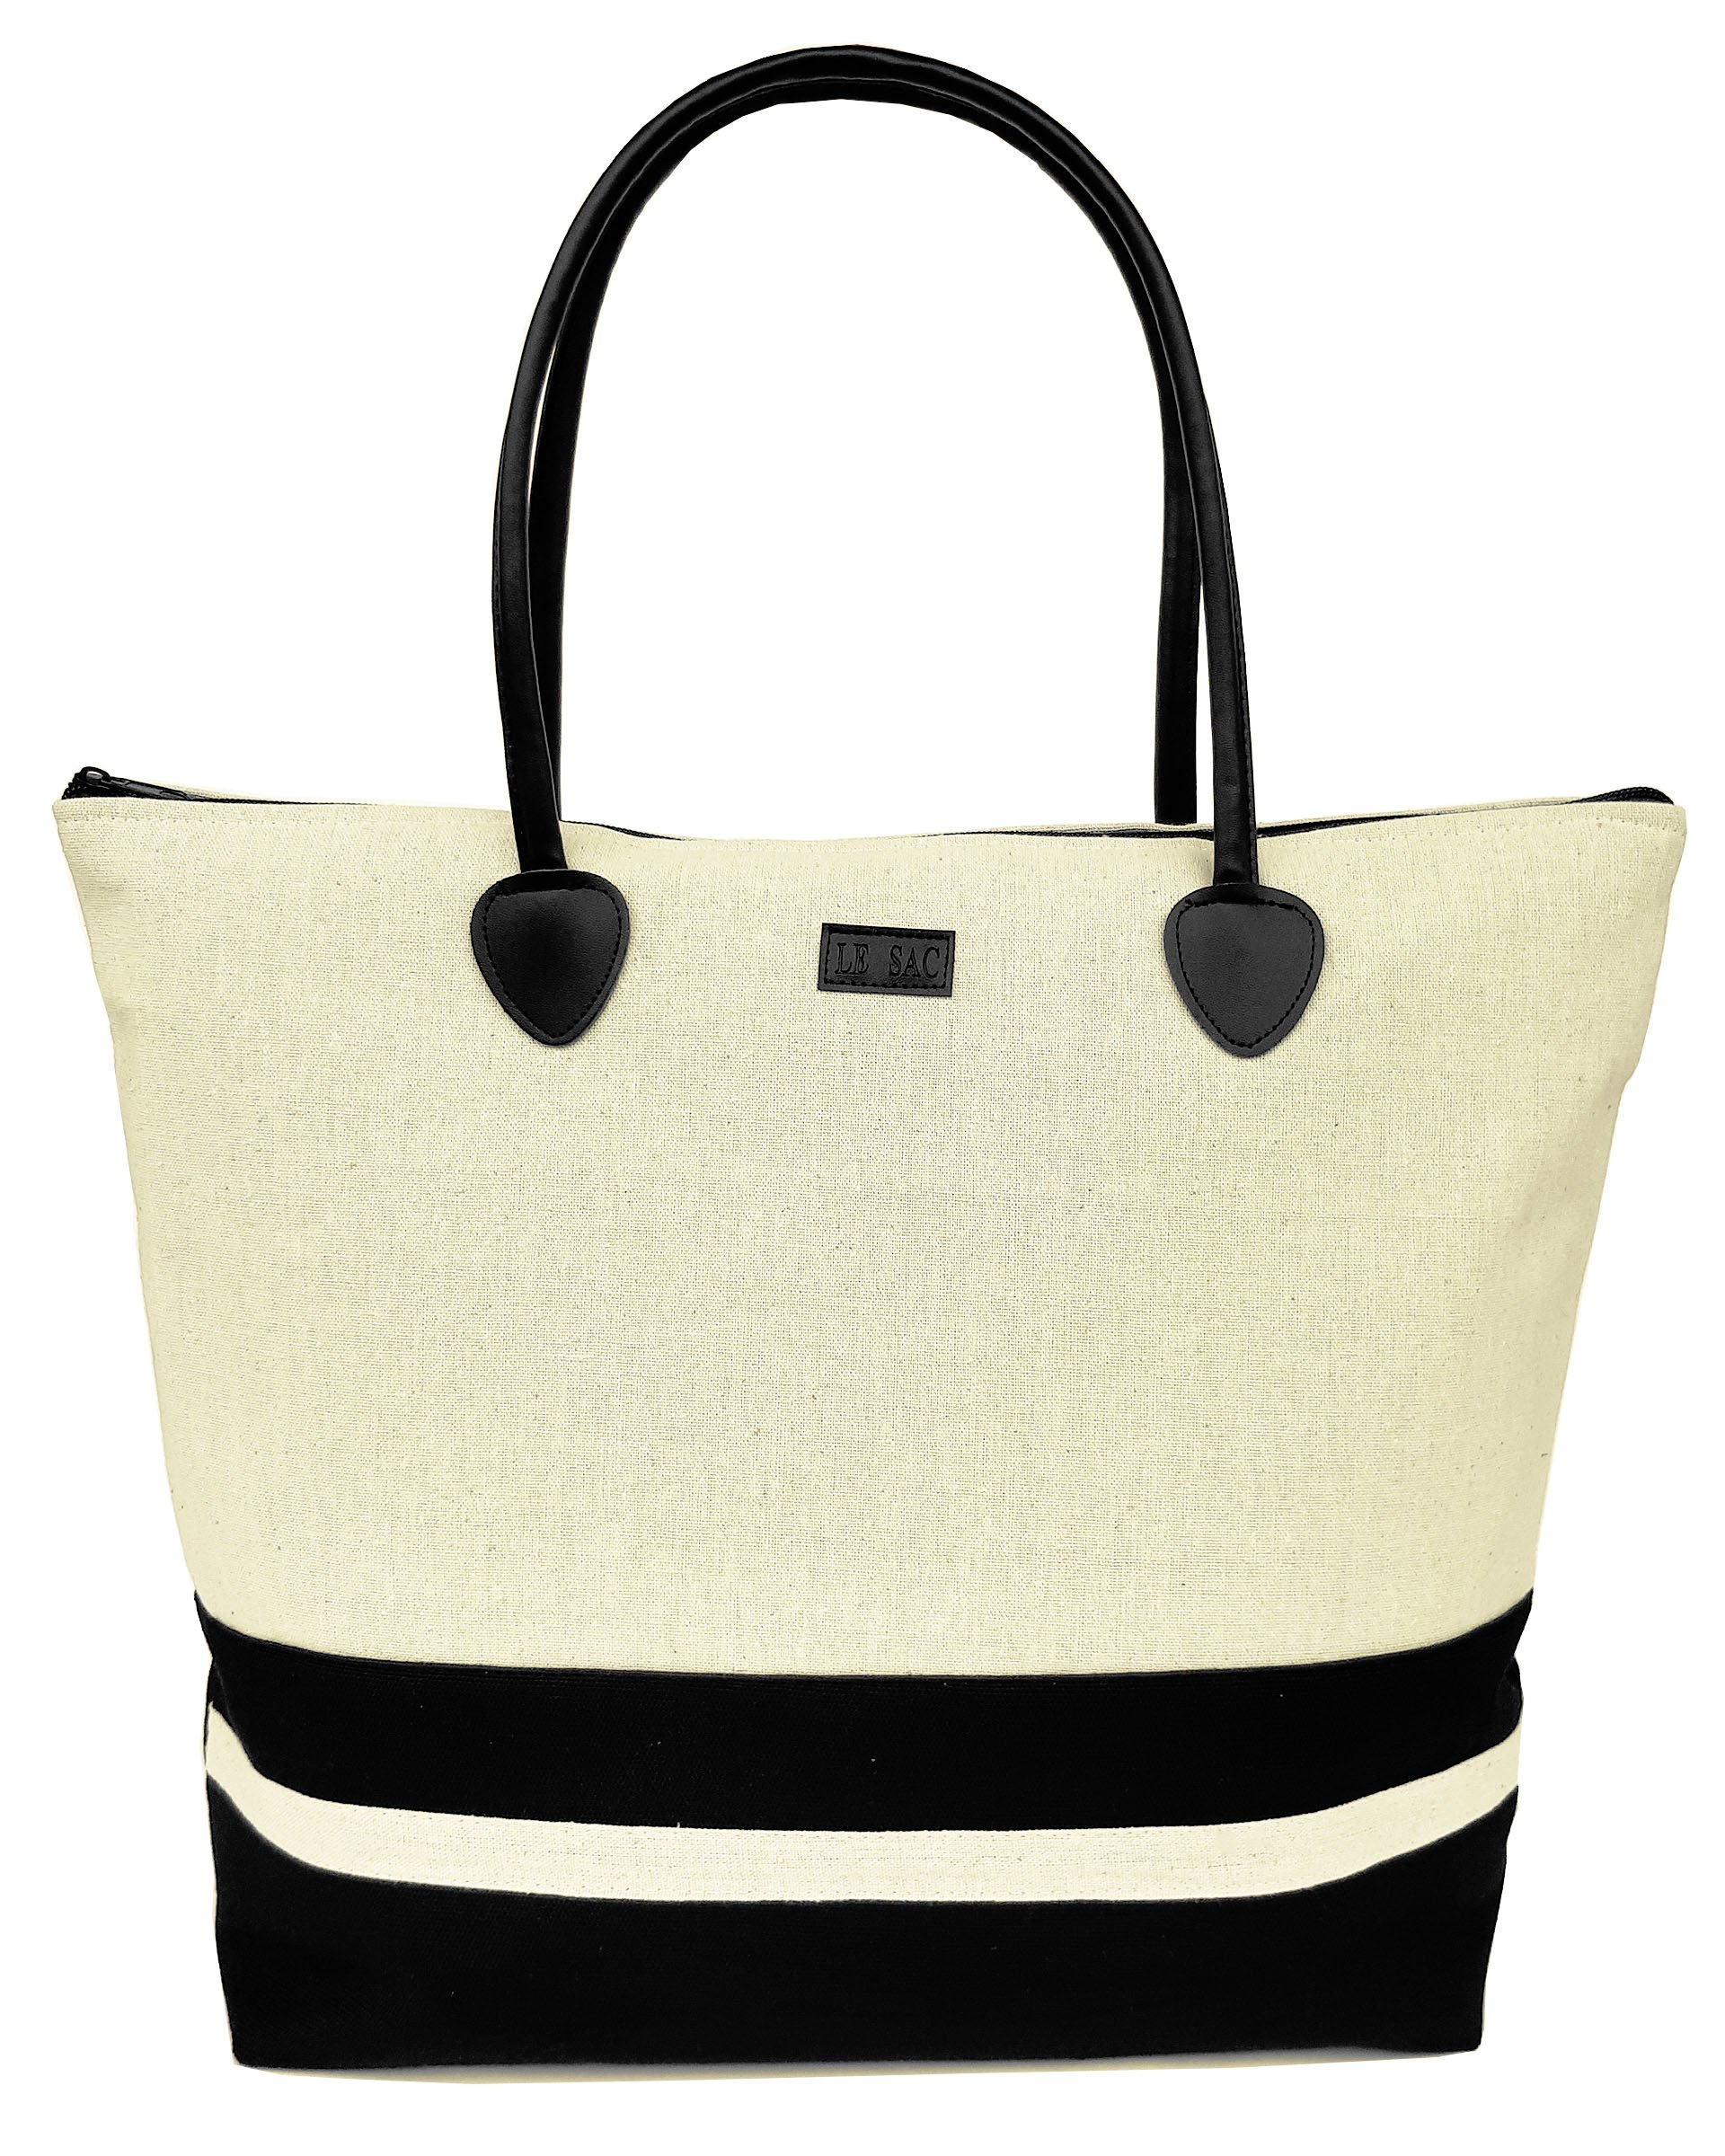 Le Sac Tote Shoulder Beach Bag in Canvas Fashion Striped Large Foldable Zippered